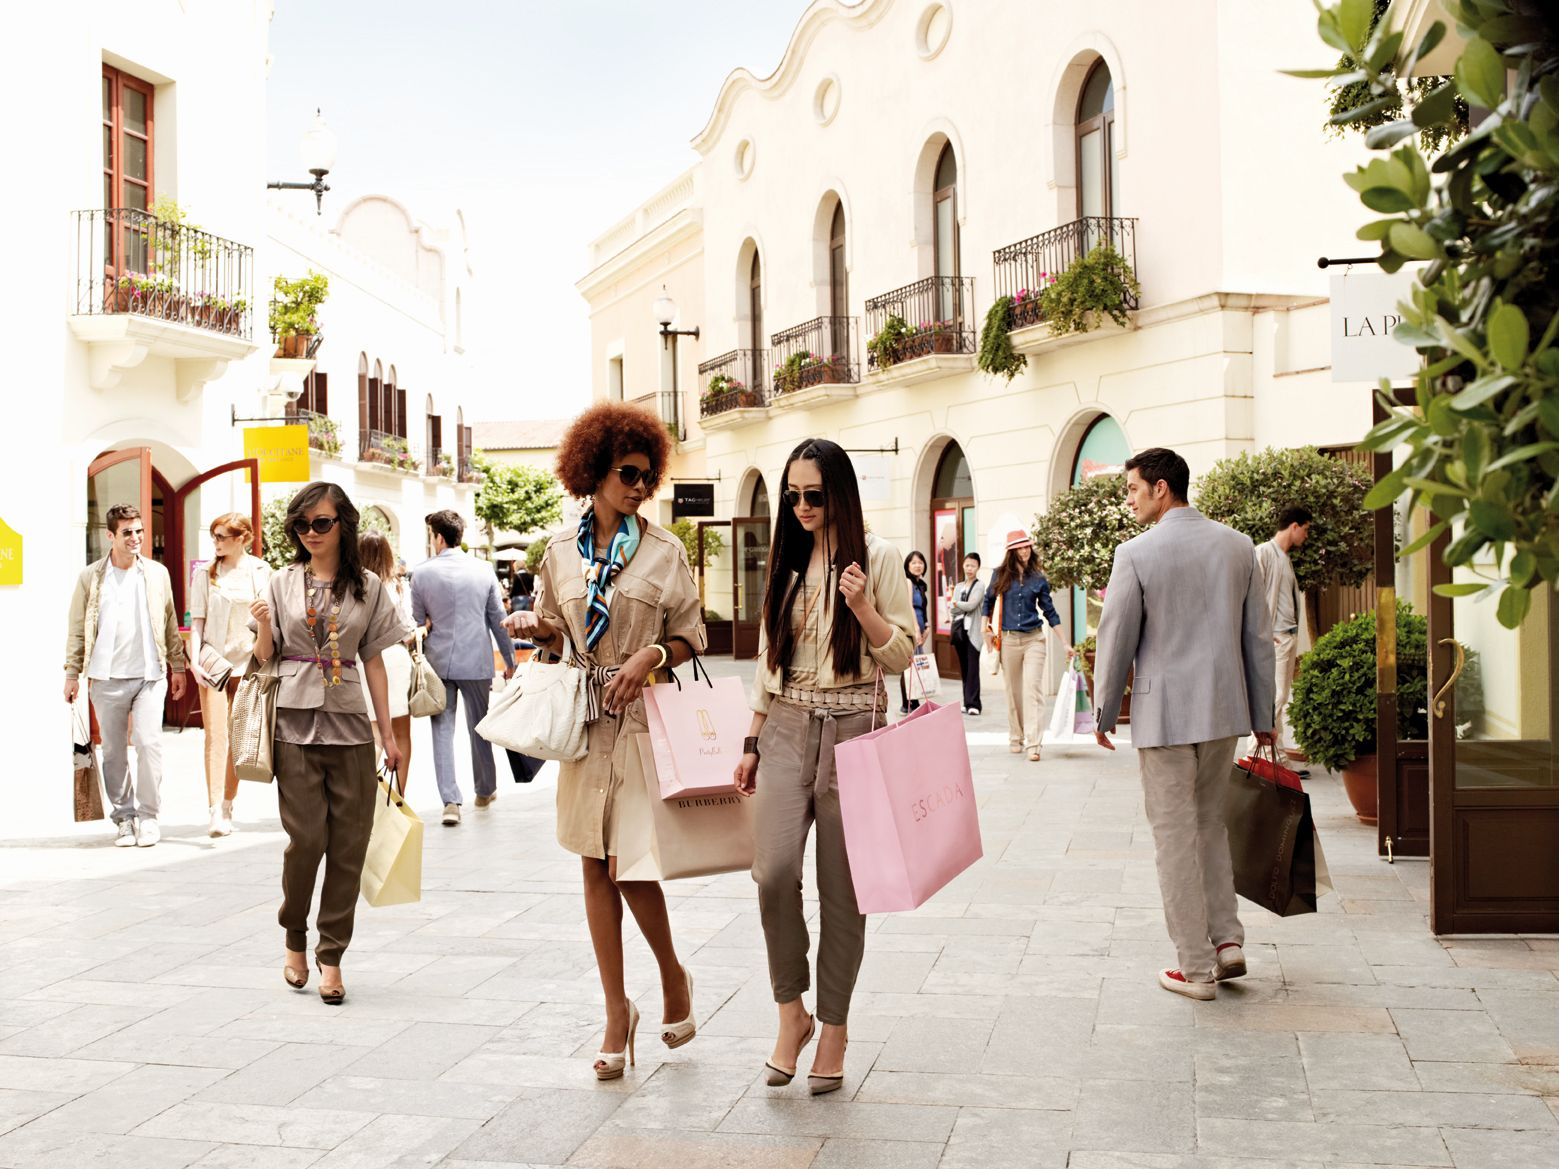 Outlet Shopping Village in Barcelona